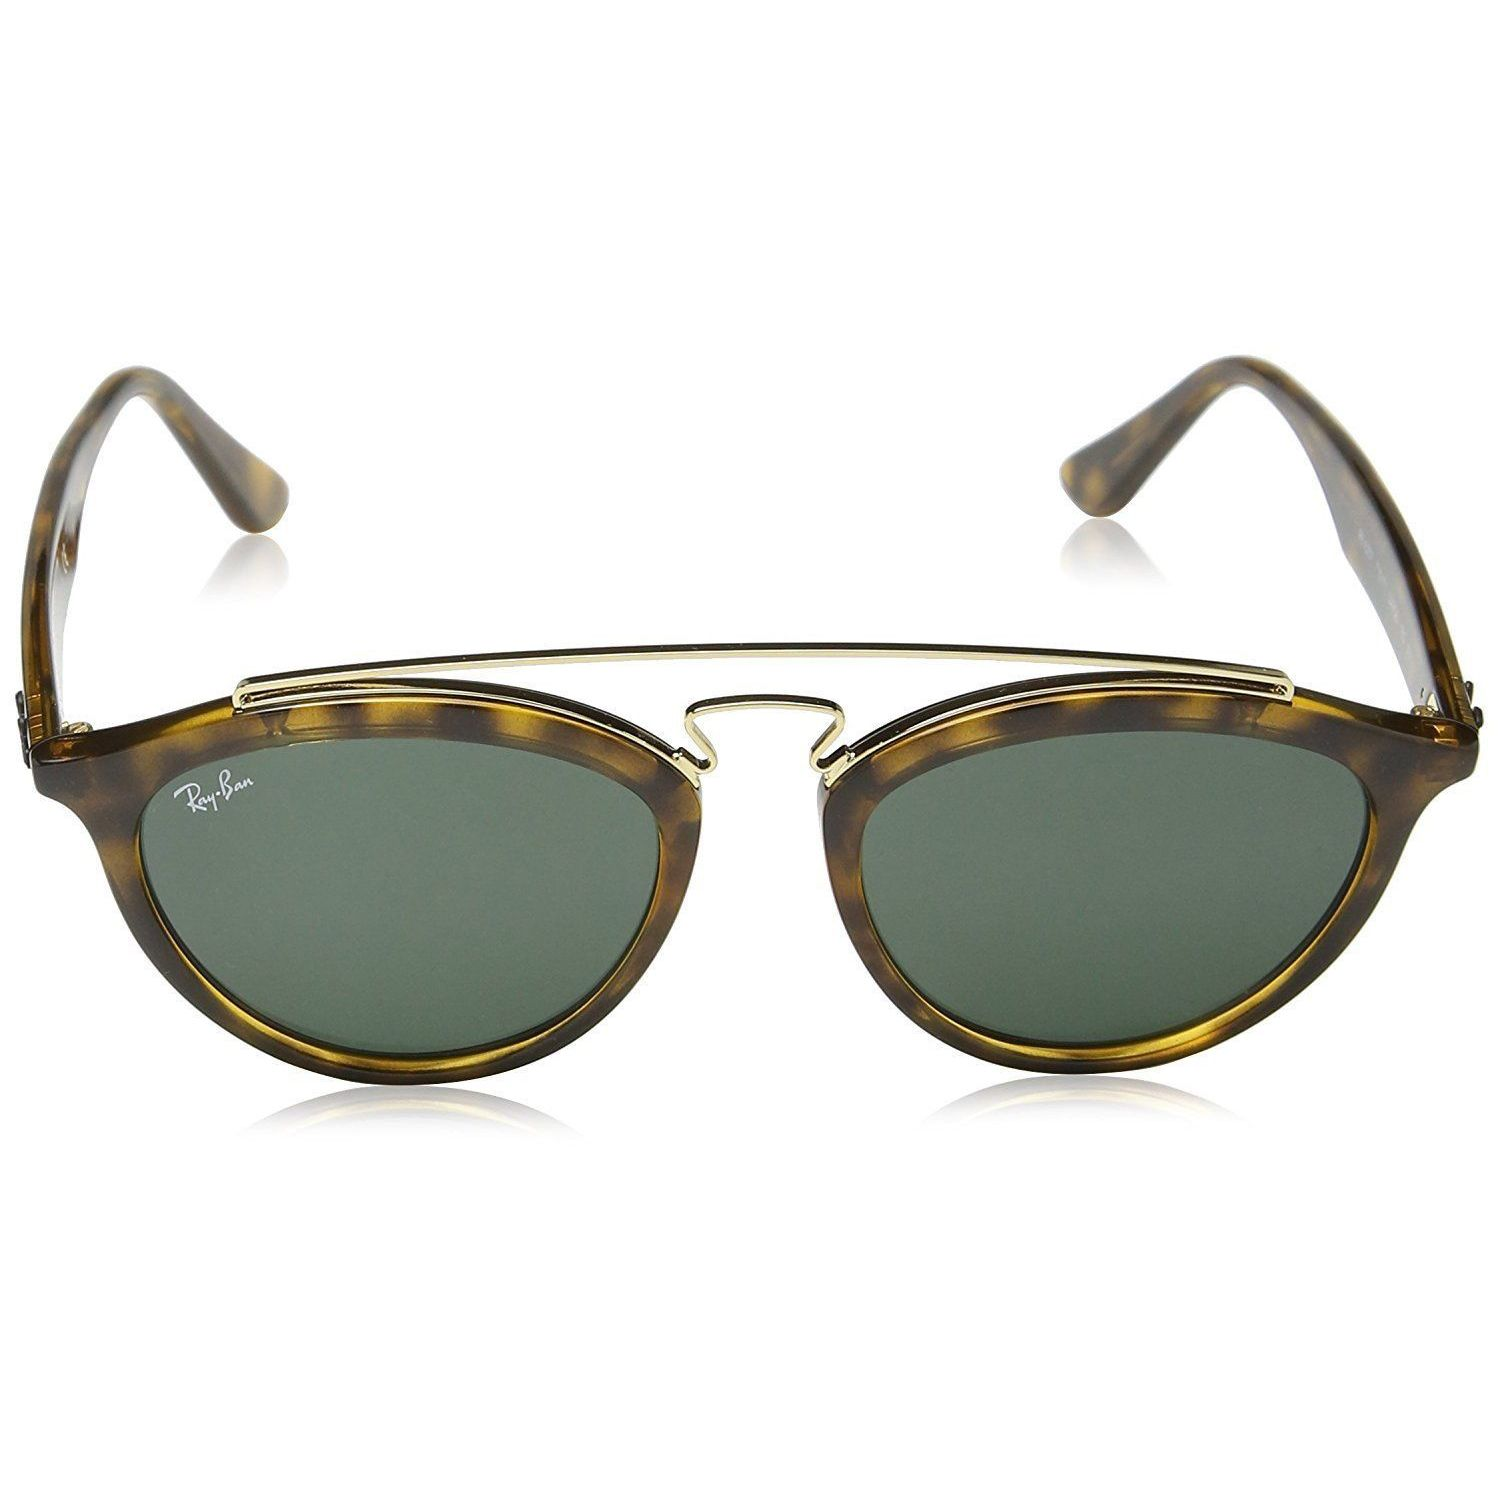 1eeaa7025a0 Shop Ray-Ban Gatsby II RB4257 710 71 Women s Tortoise Frame Green Classic Lens  Sunglasses - Free Shipping Today - Overstock - 15287404